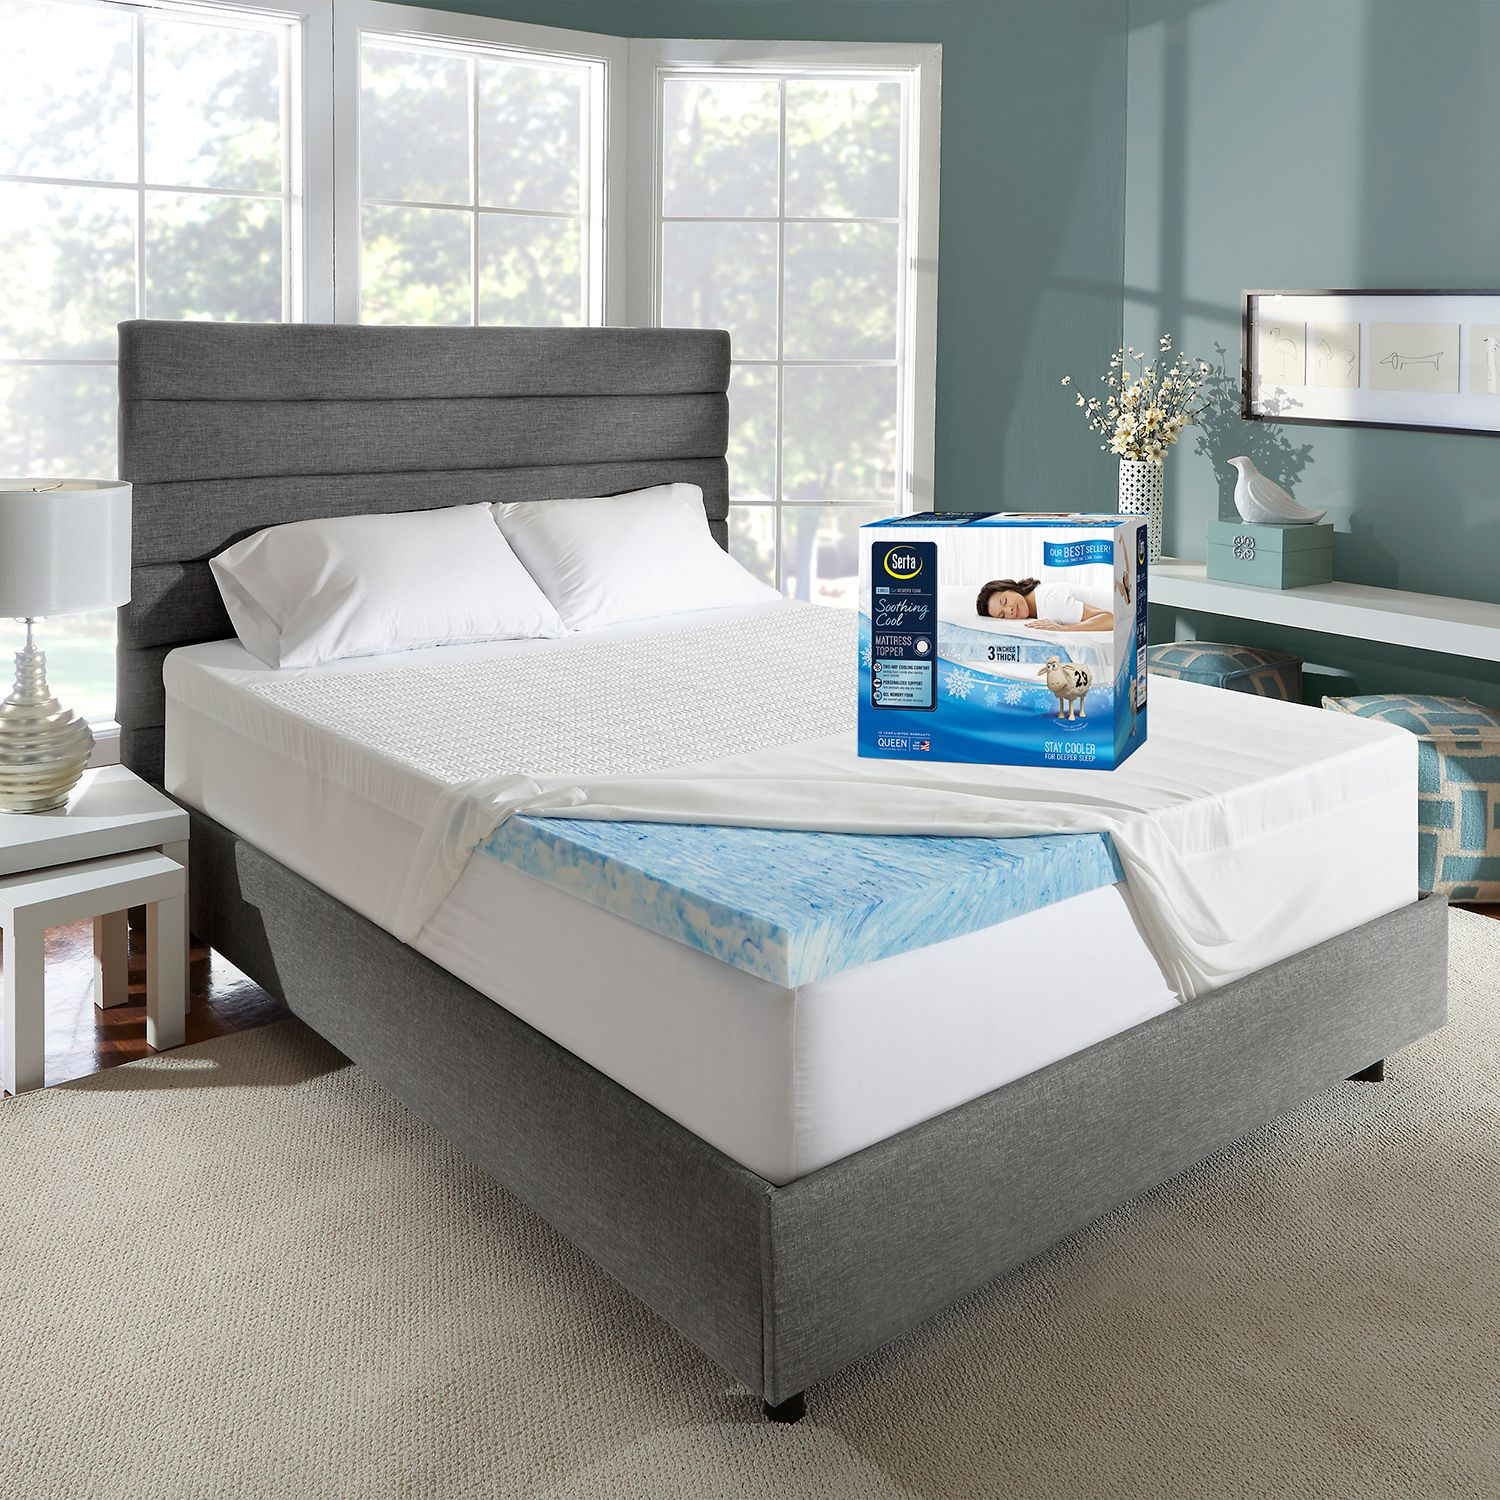 Mattress Pads & Toppers Bed & Bath